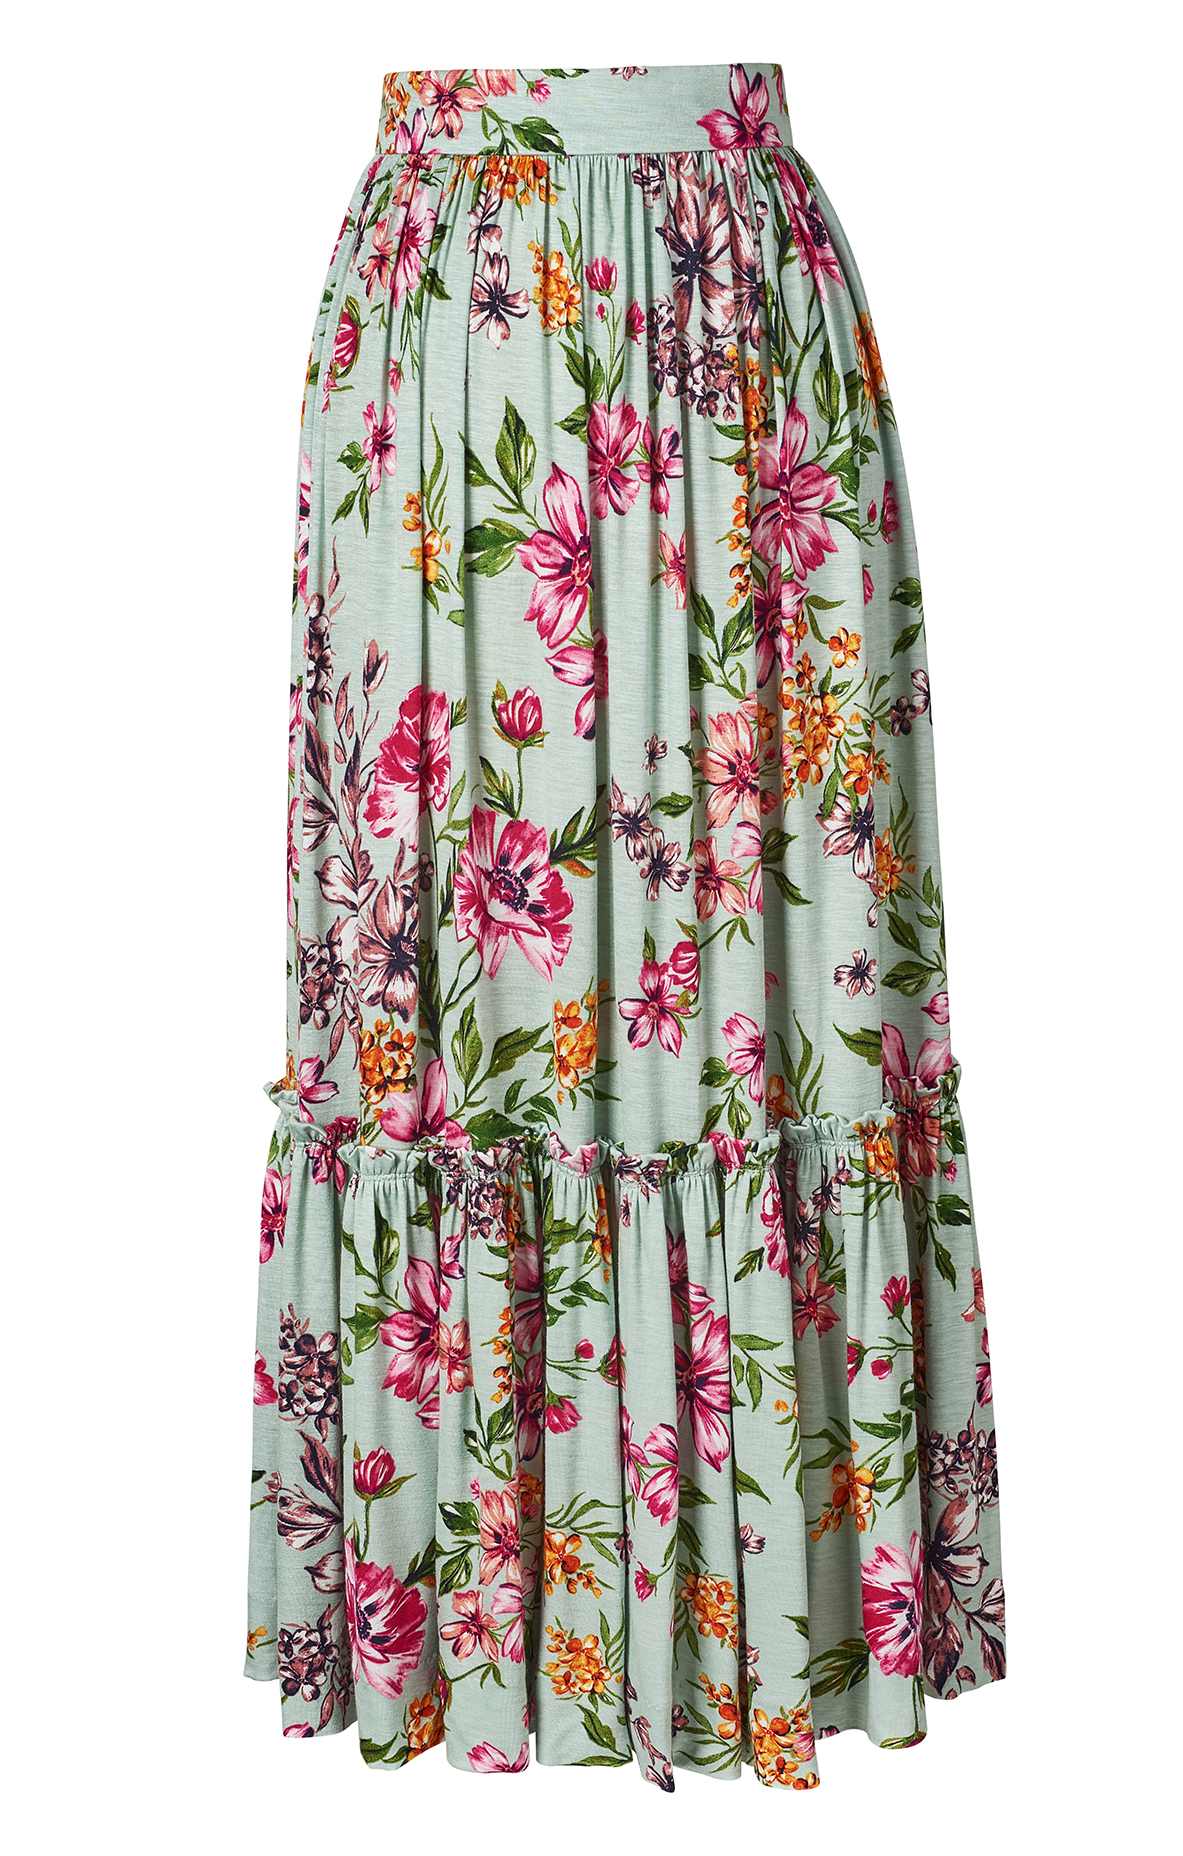 The Passion and the Flower Skirt $240